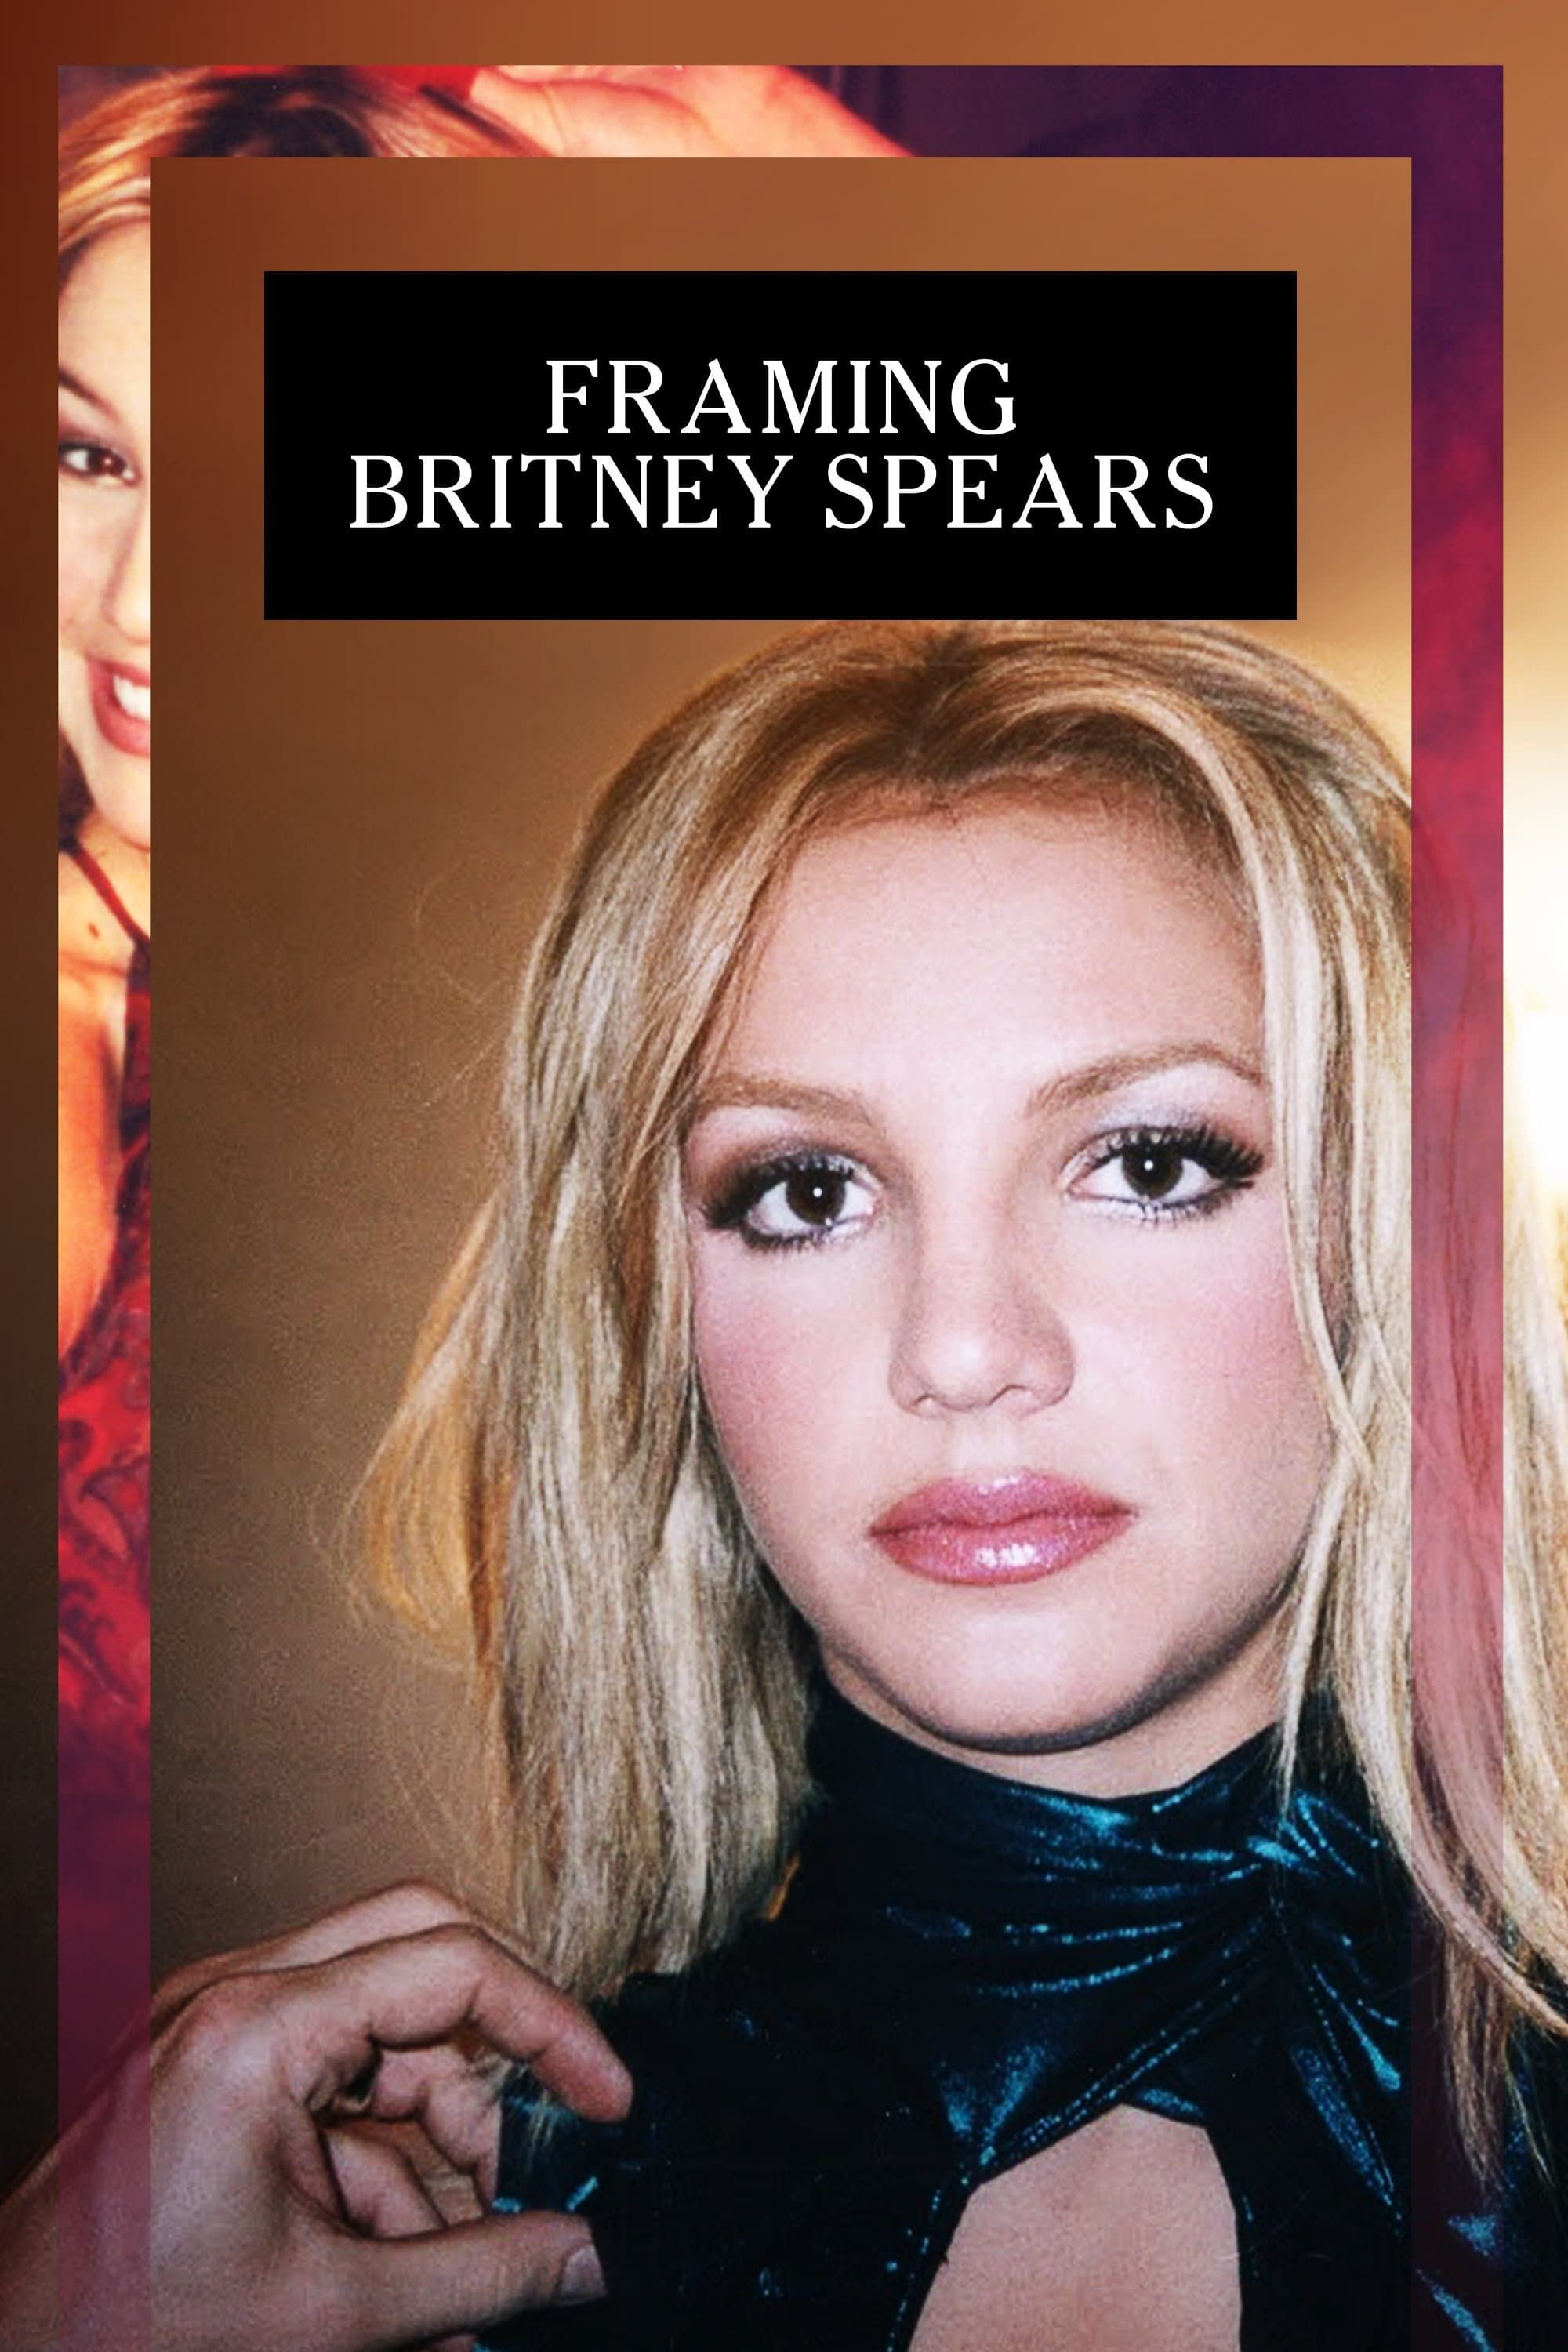 Framing Britney Spears - Documentaire (2021) streaming VF gratuit complet